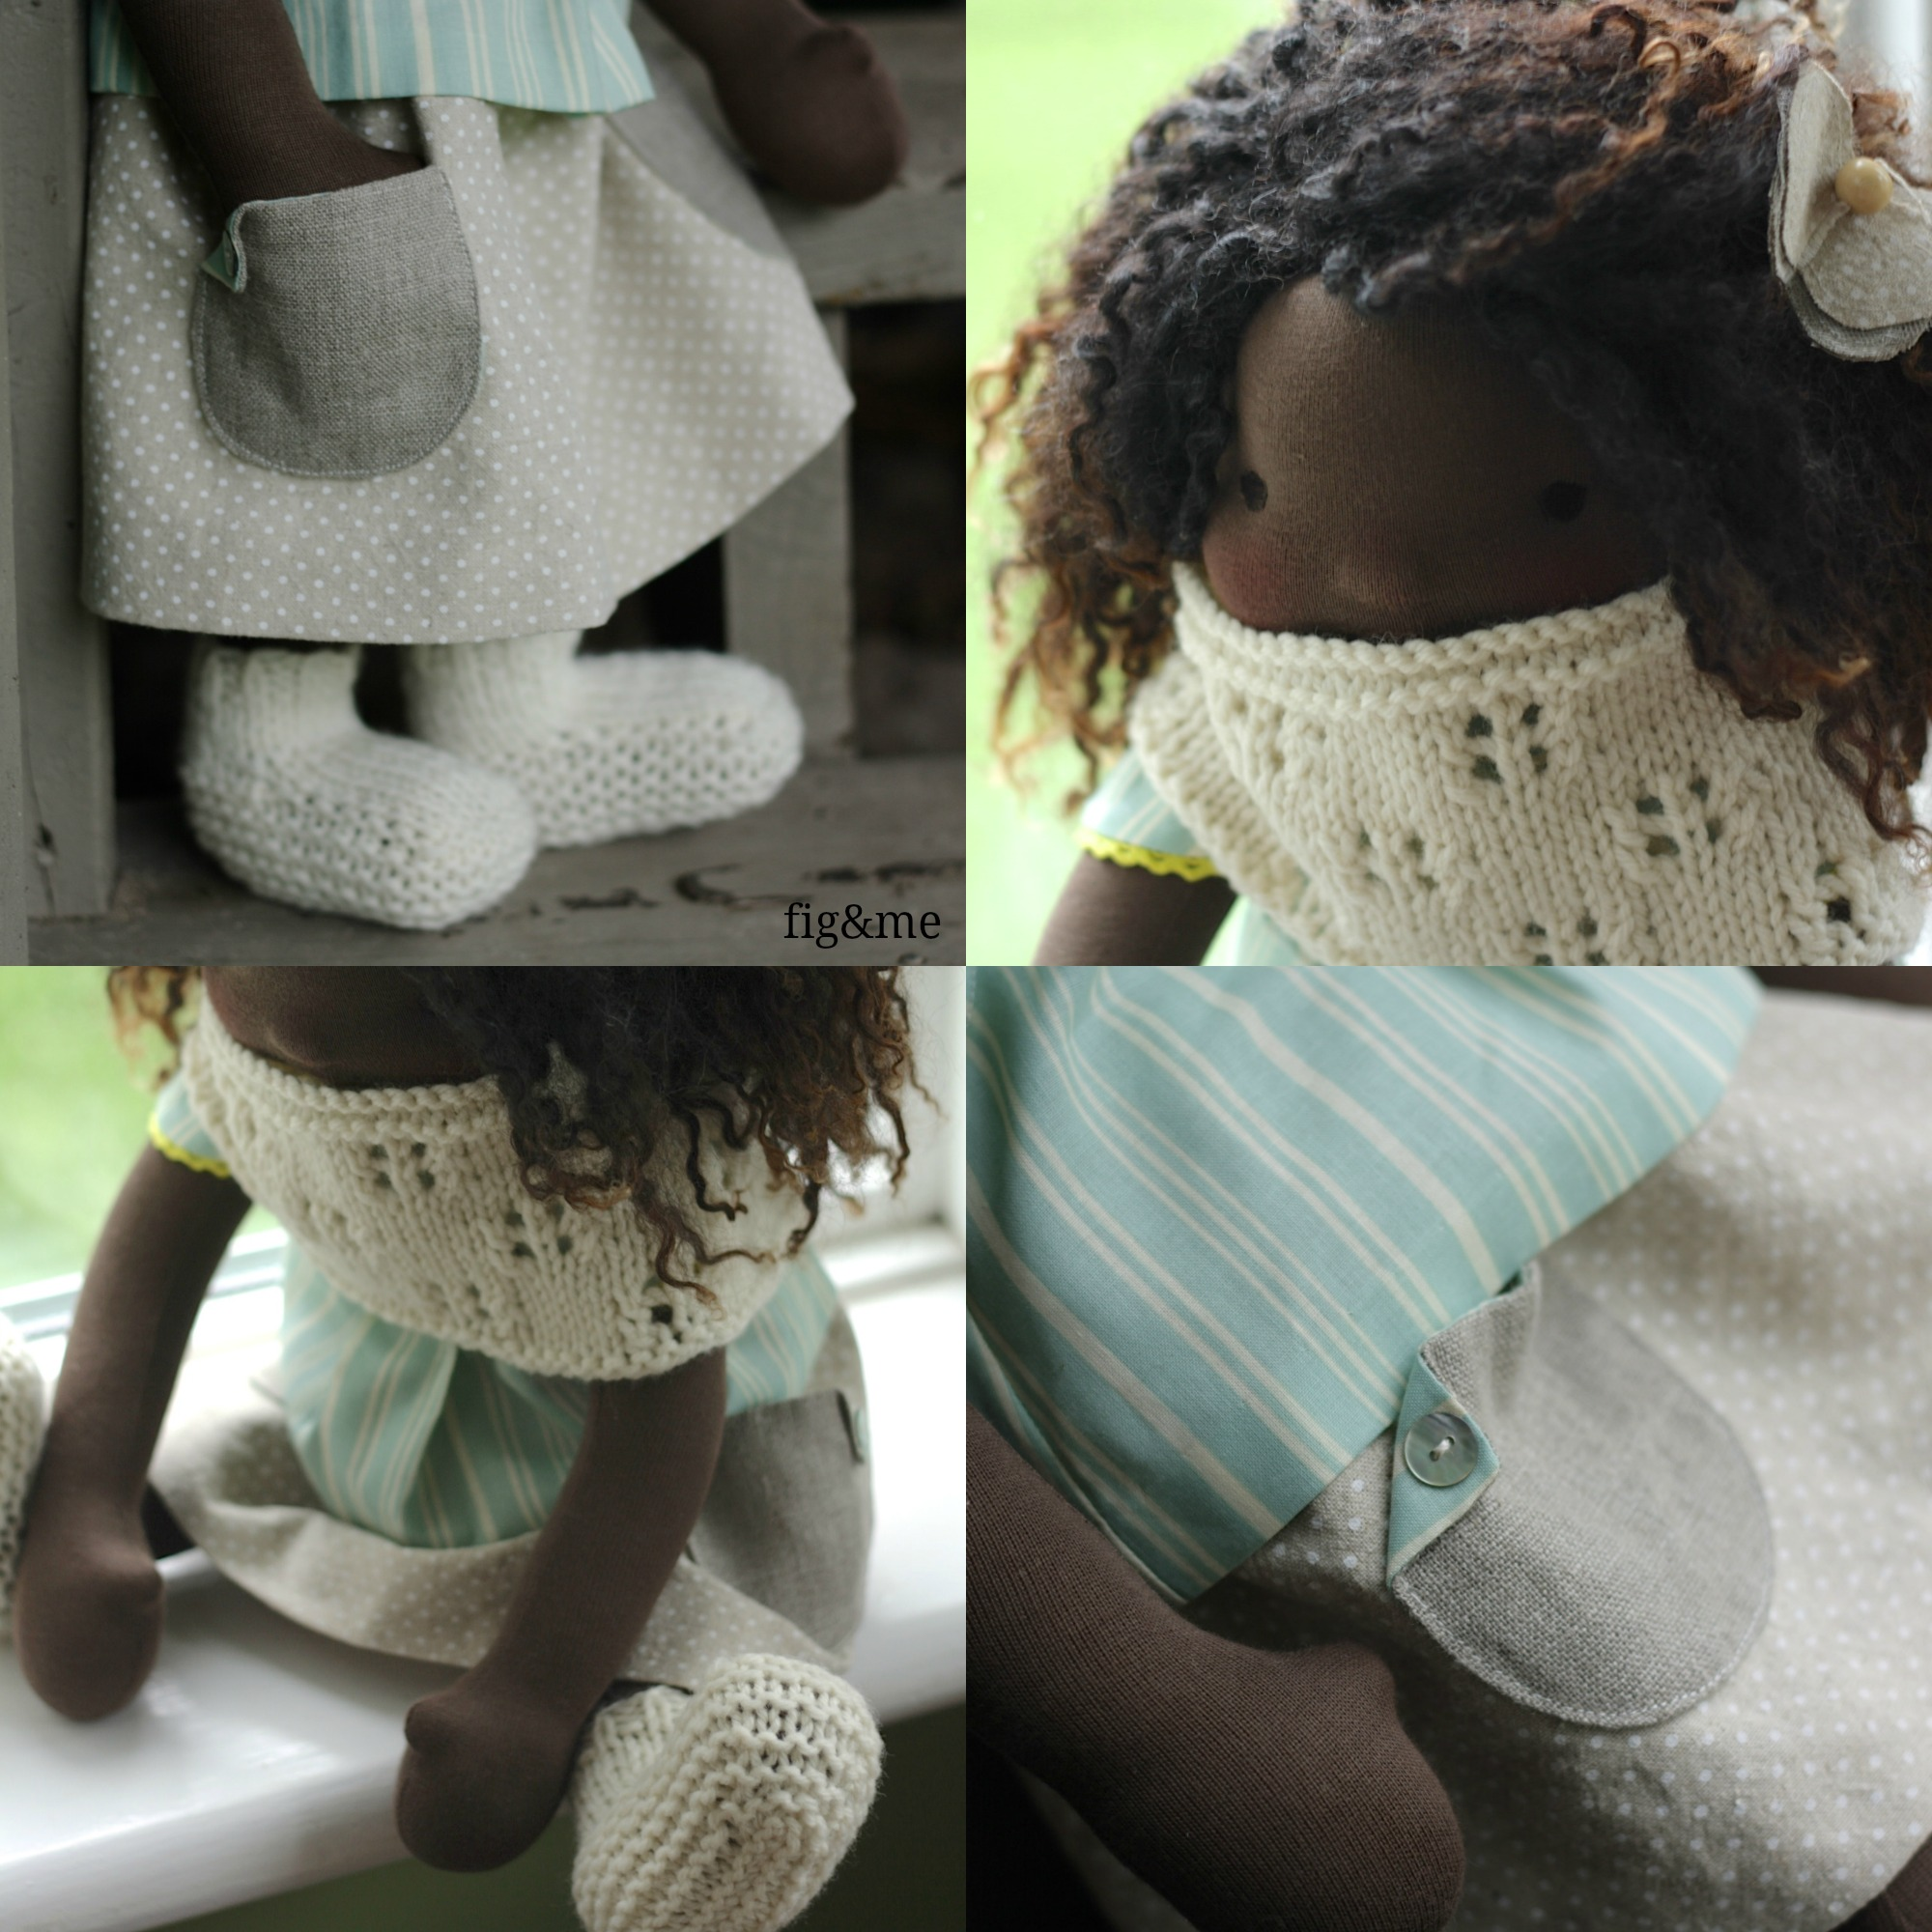 Details of Ivy's clothing, by Fig and Me.